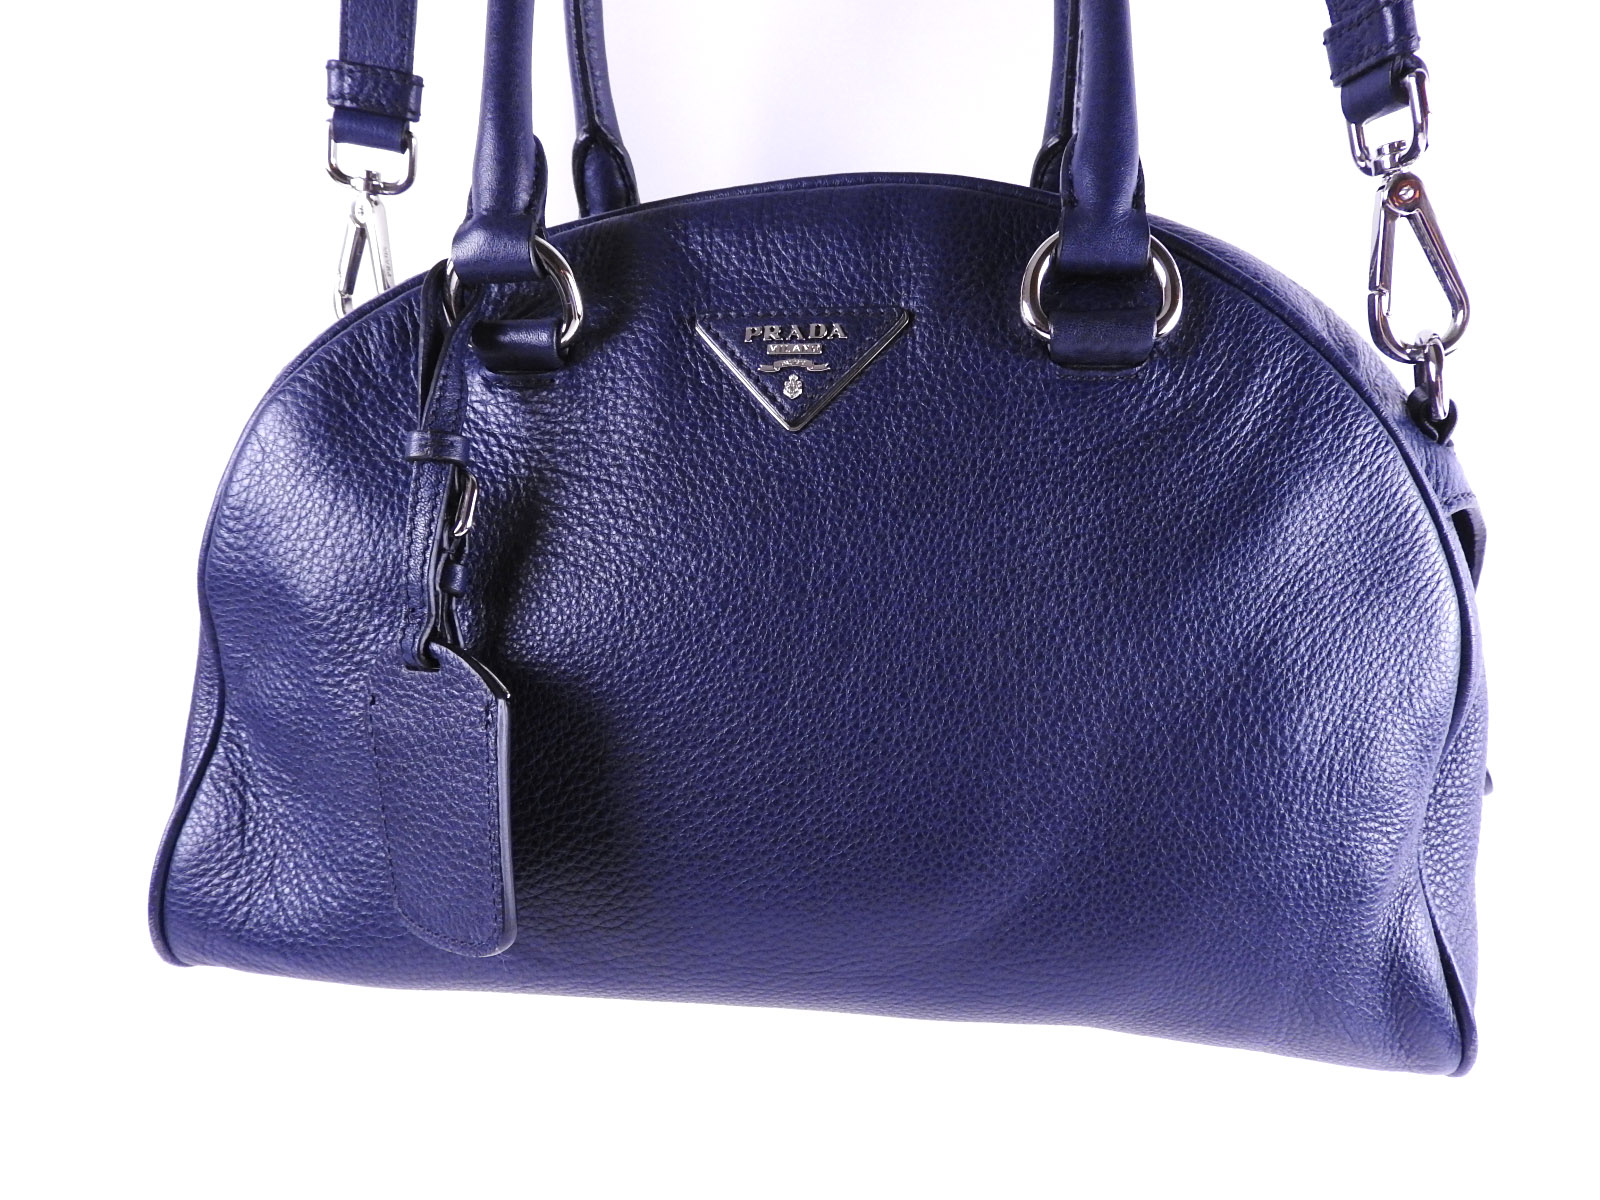 d52fe5e4893010 Prada 2WAY bowling bag shoulder bag handbag 1BB008 VIT.DAINO BALTICO navy  ...